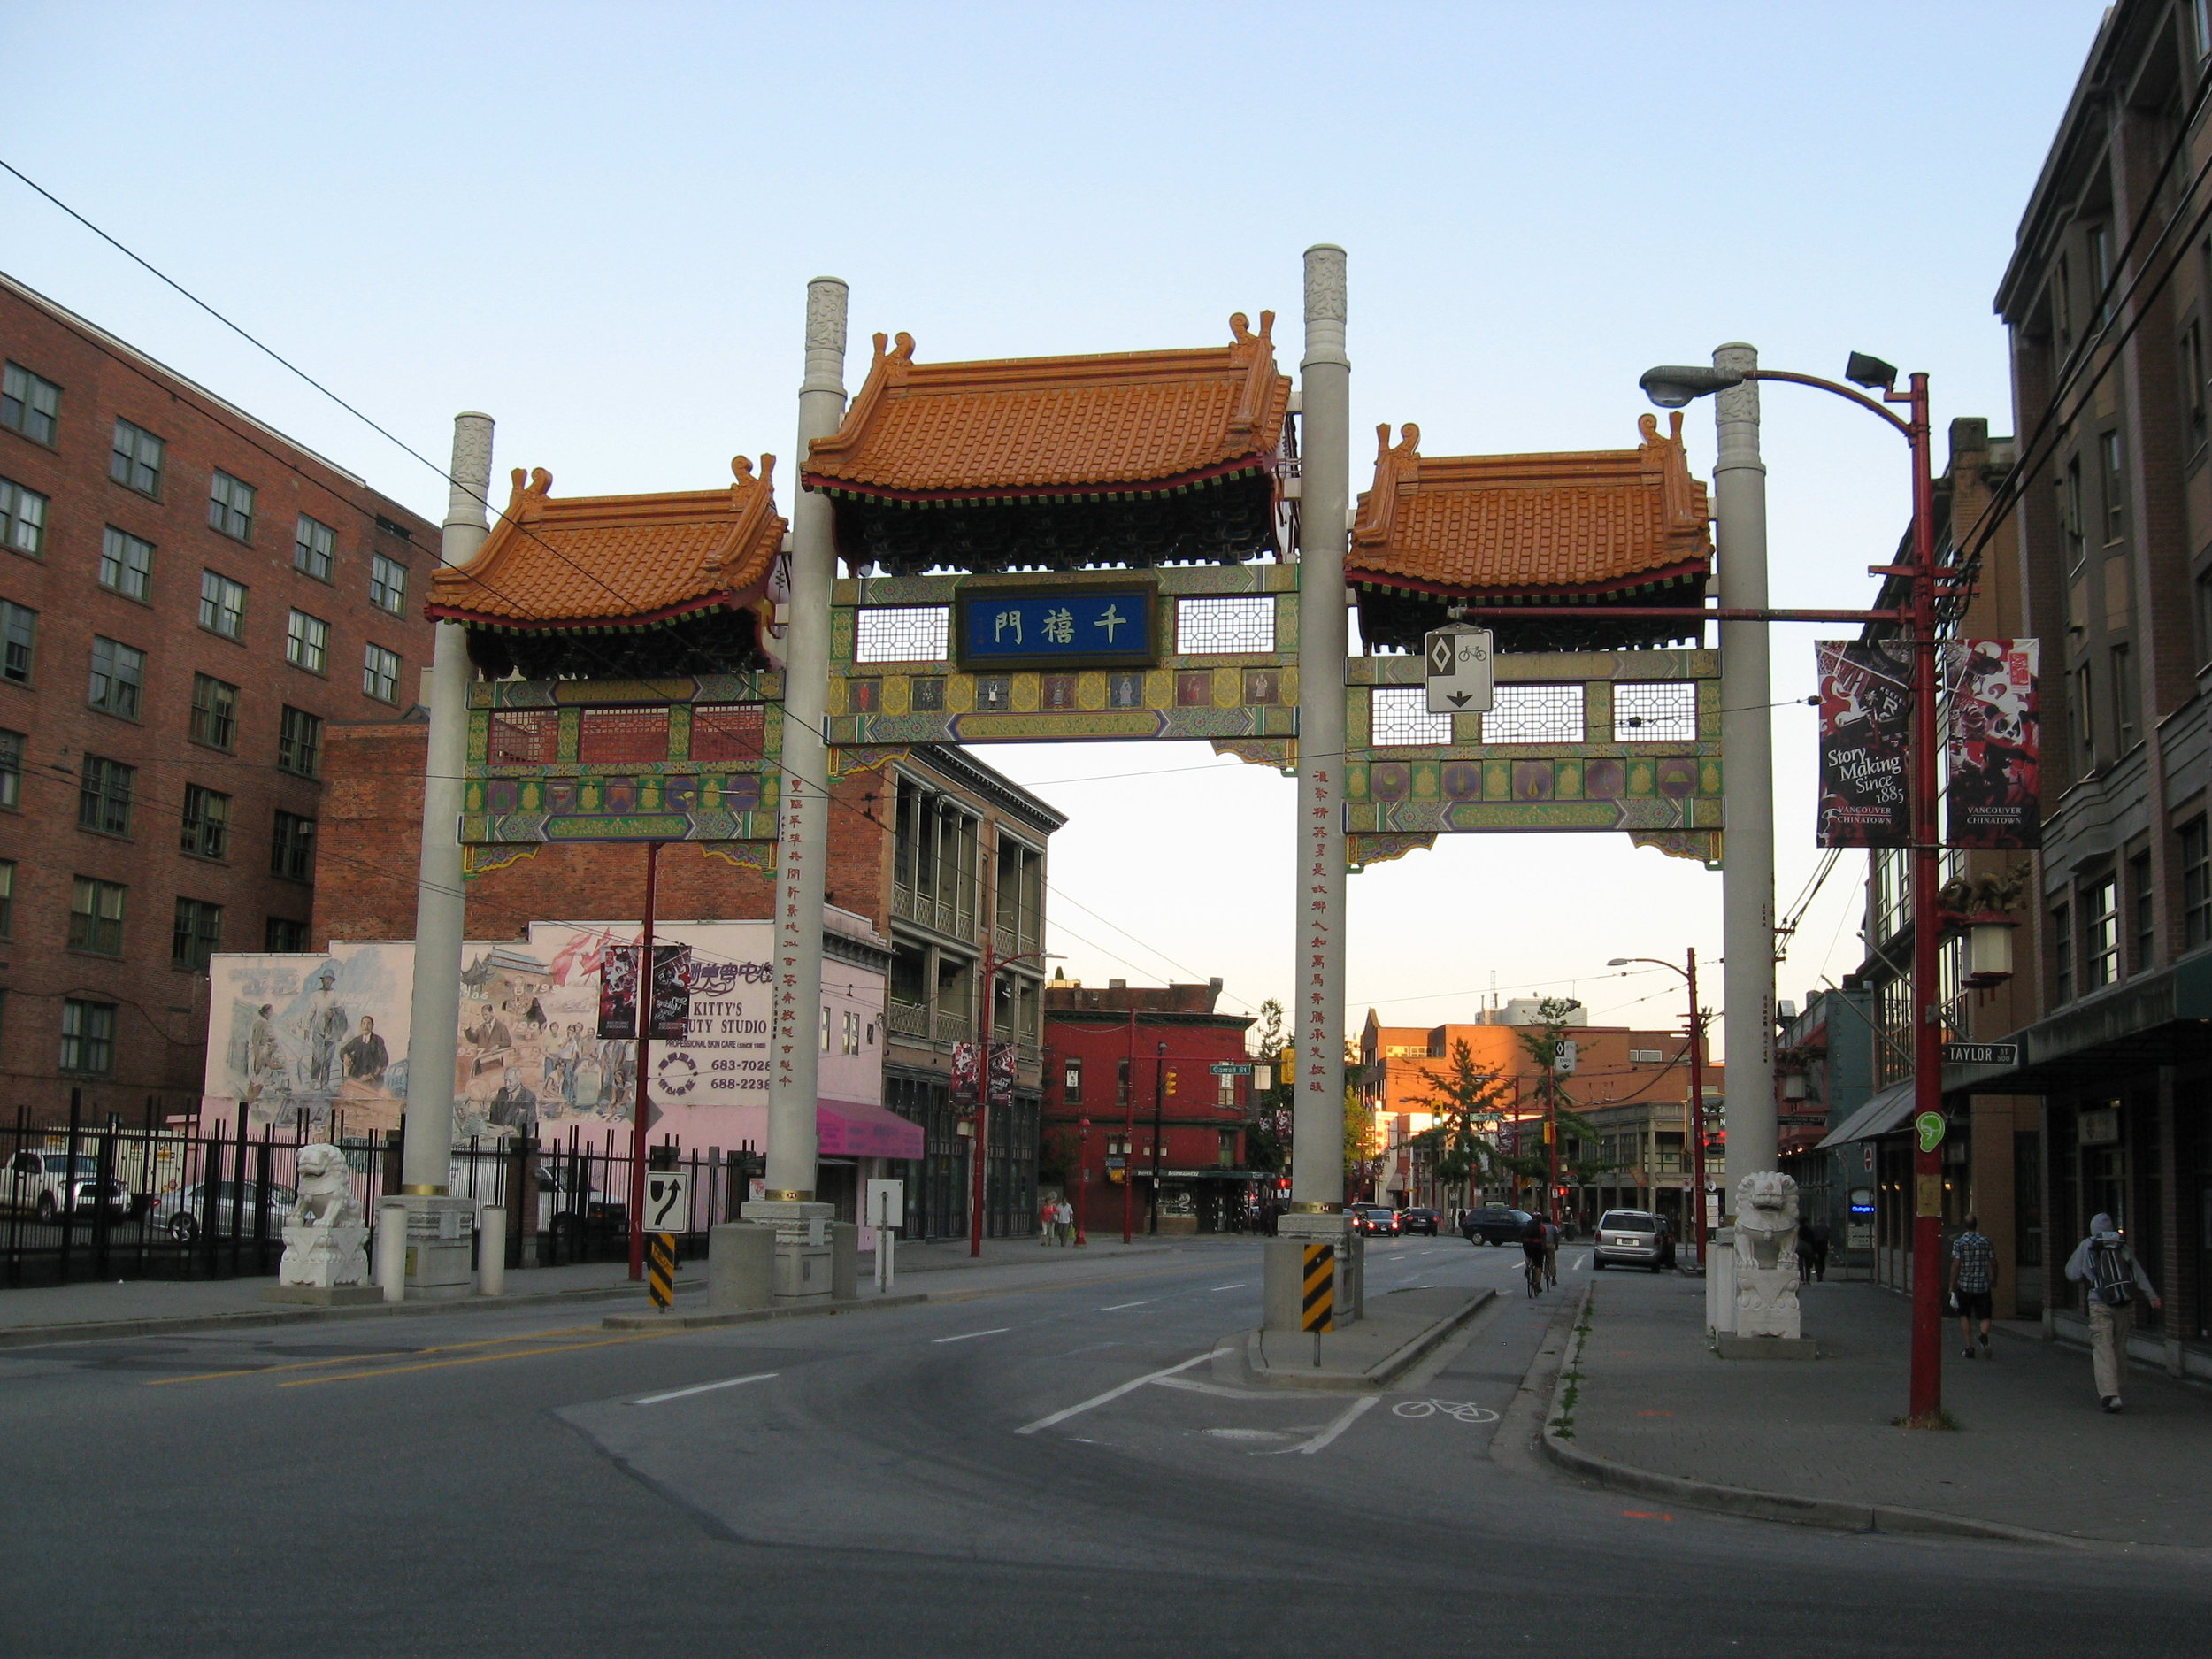 Millennium_Gate,_Vancouver's_Chinatown_National_Historic_Site_of_Canada,_WLM2012.jpg